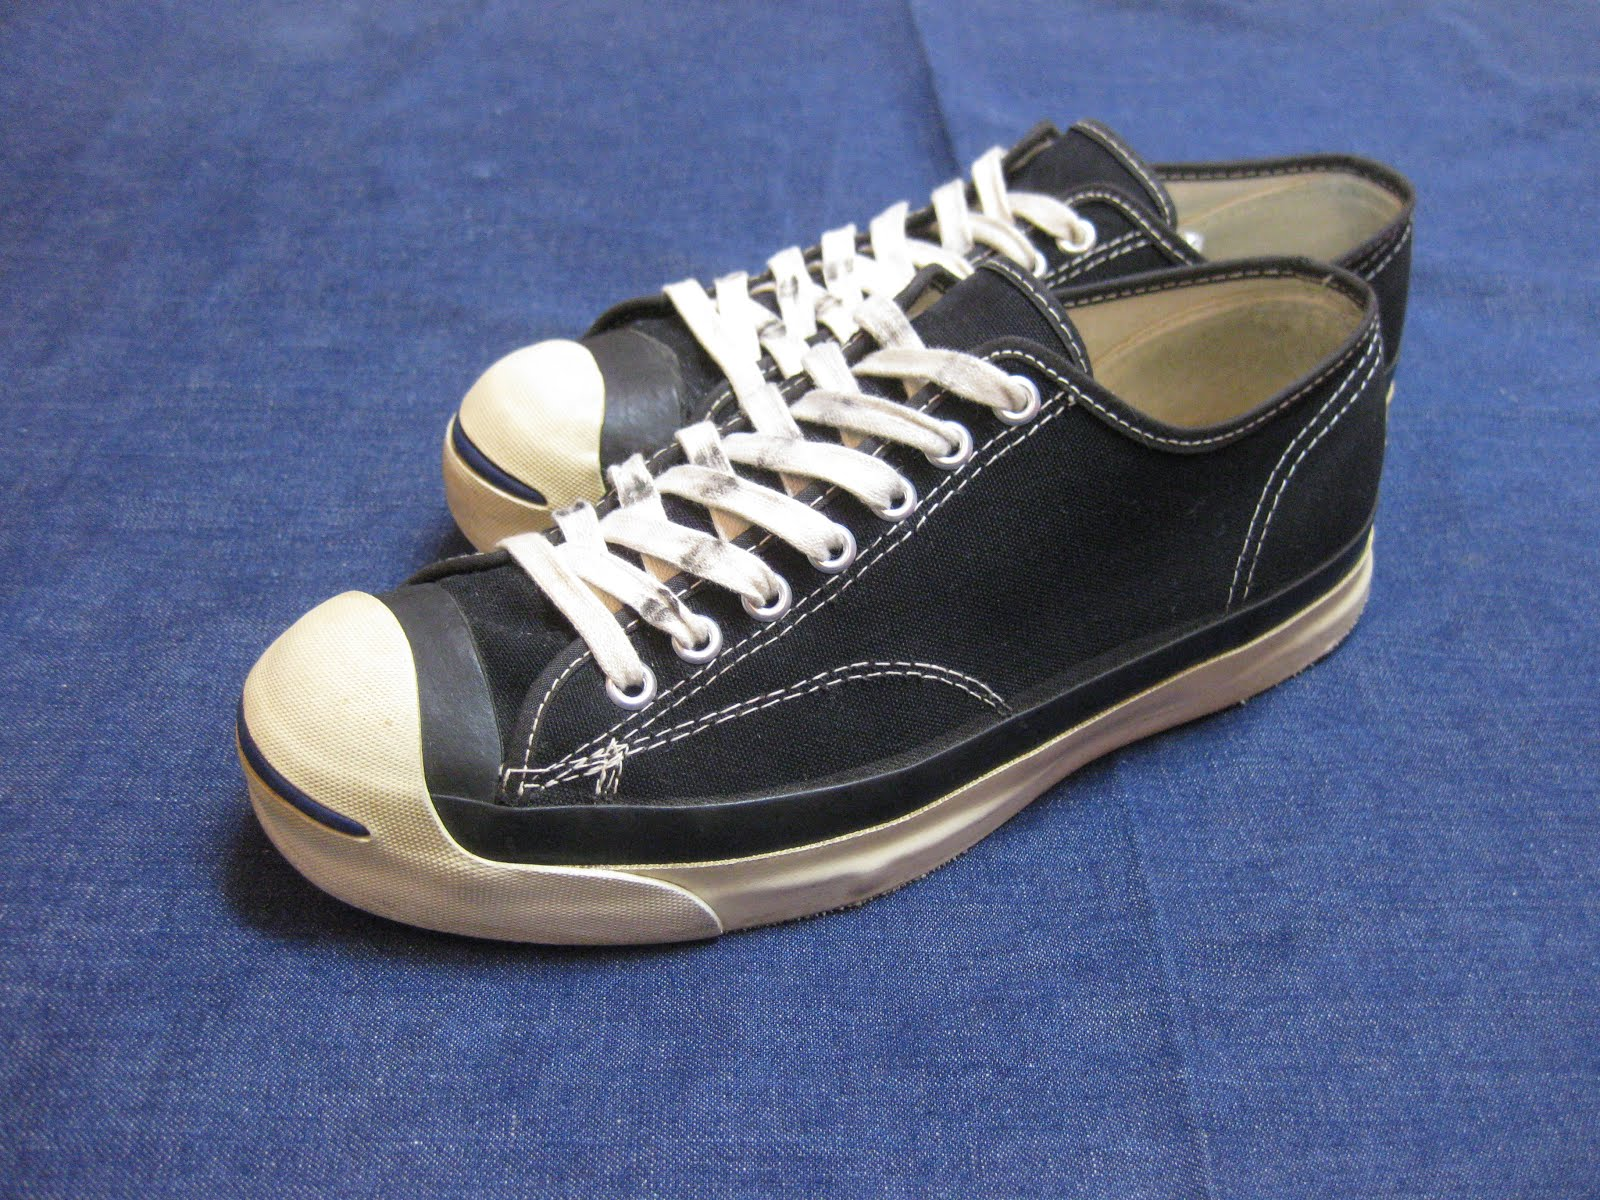 ~60's 「B.F.GOODRICH」             「JACK PURCELL」